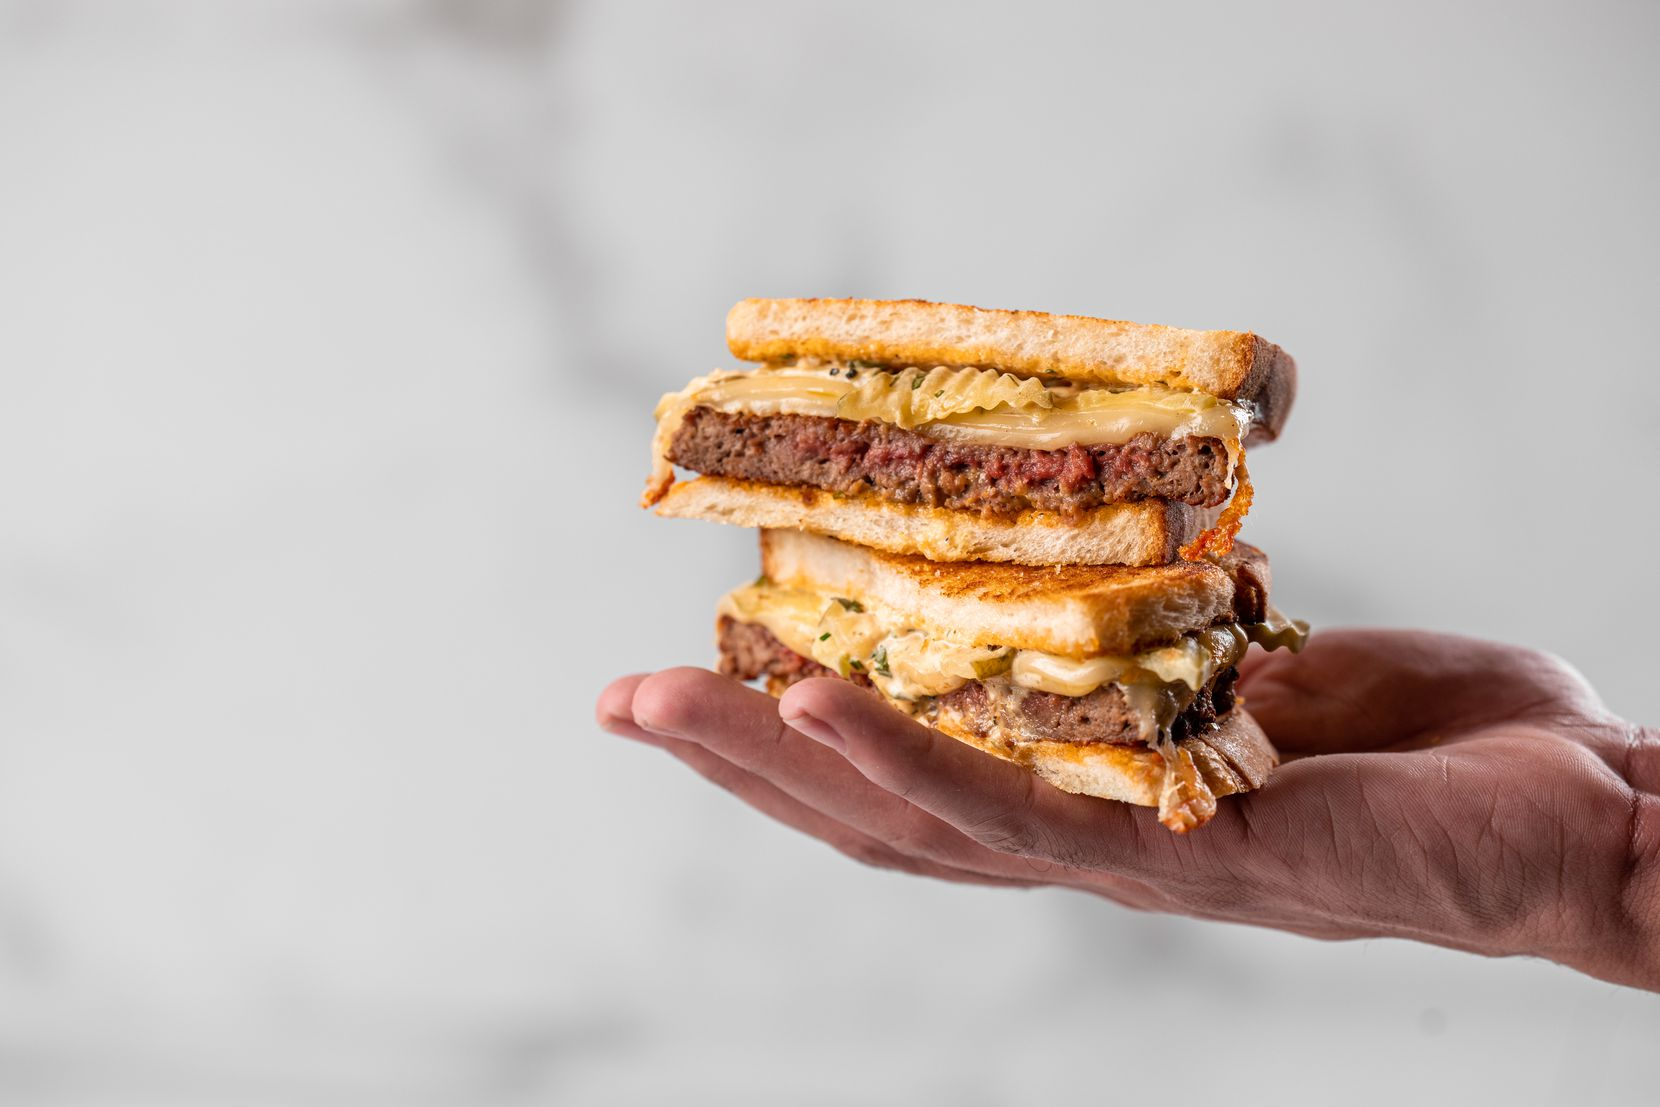 The patty melt at Rise & Thyme in the AT&T Discovery District in downtown Dallas is made with a plant-based Impossible Foods patty.